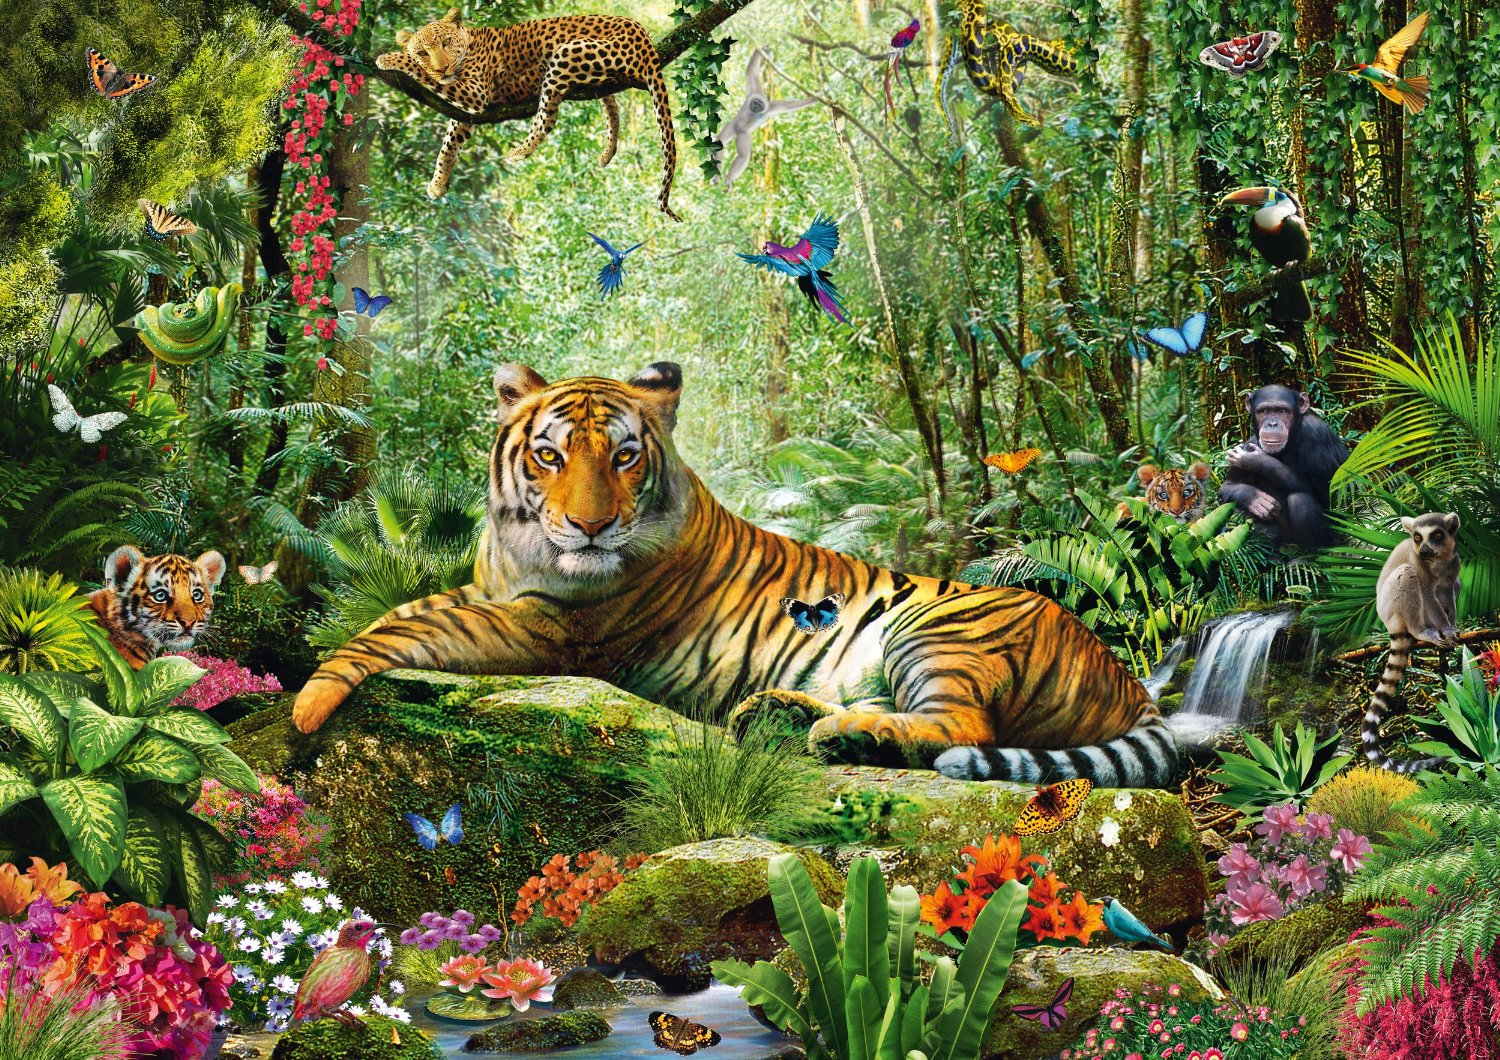 tigres dans la jungle 1500 teile schmidt spiele puzzle acheter en ligne. Black Bedroom Furniture Sets. Home Design Ideas